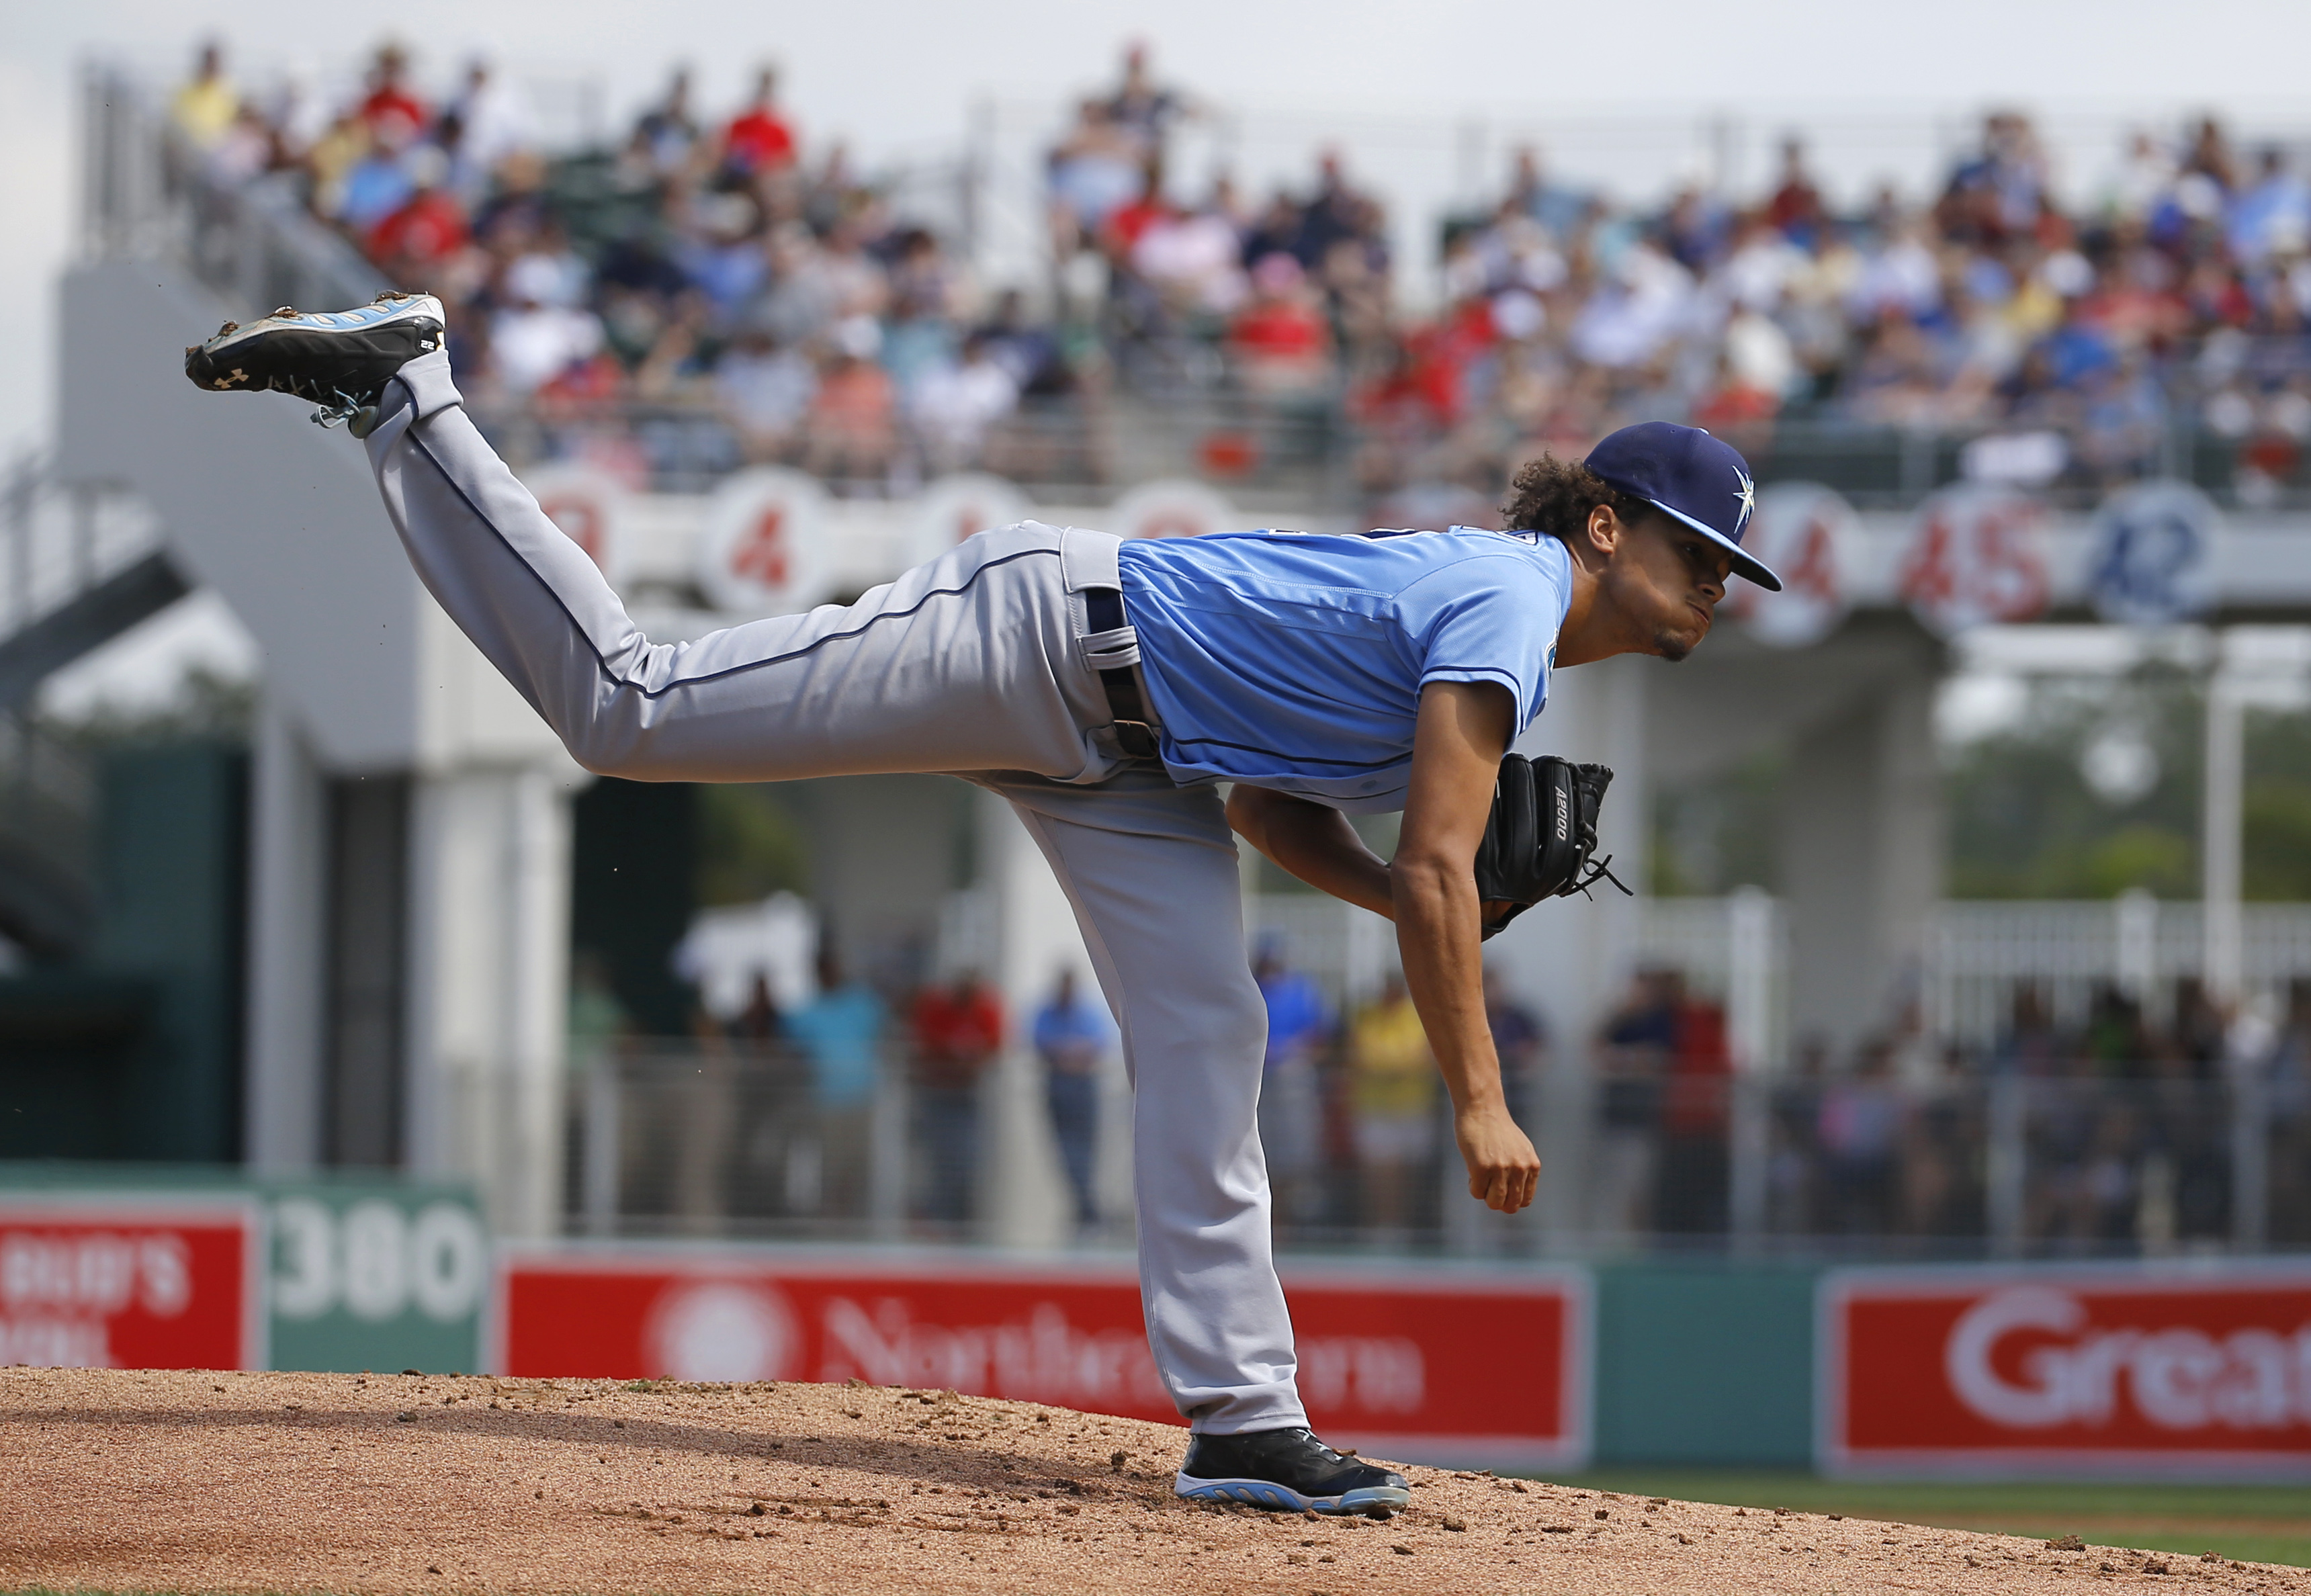 FILE - In this March 4, 2016, file photo, Tampa Bay Rays starting pitcher Chris Archer follows through on a pitch to the Boston Red Sox in the first inning of a spring training baseball game in Fort Myers, Fla. From a pitching rotation that has the potent